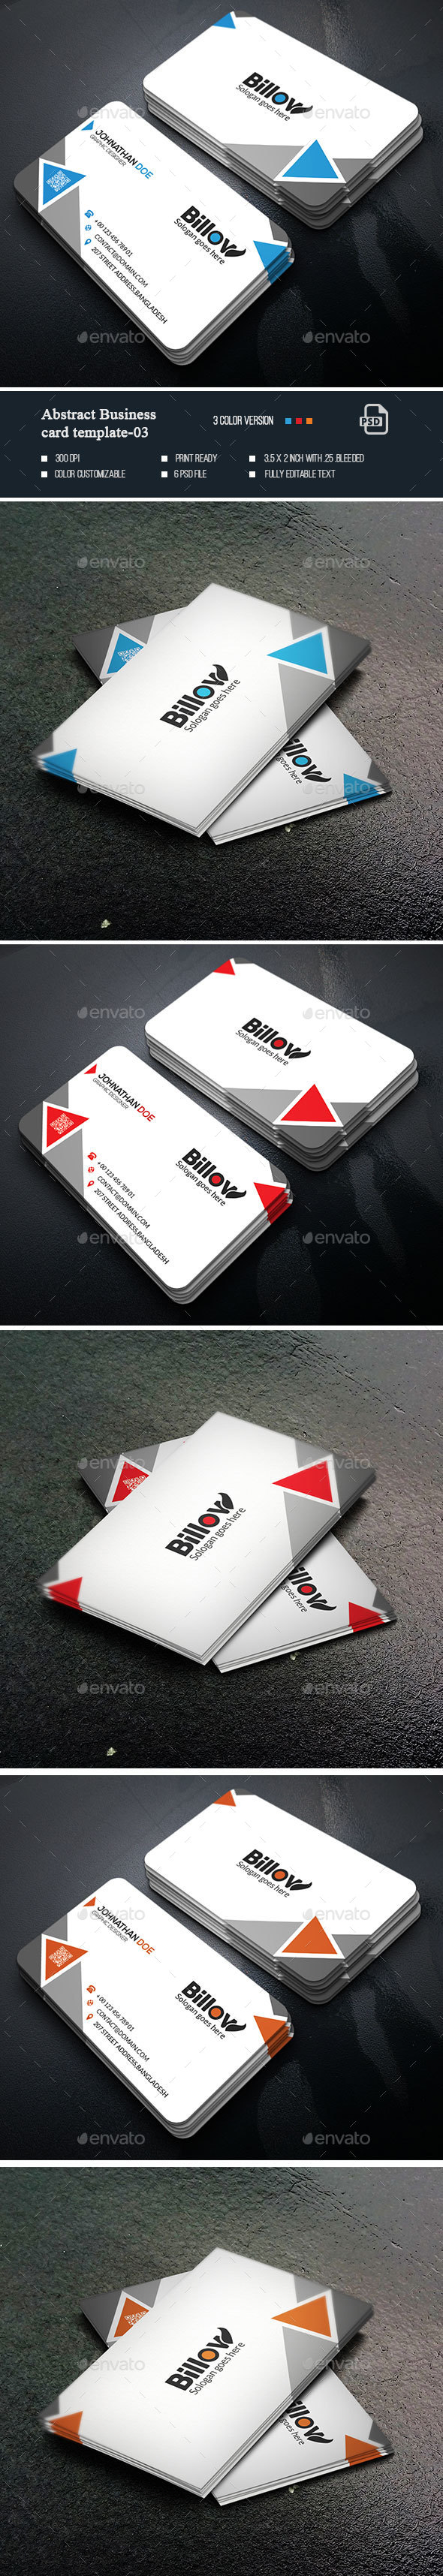 Abstract Business Card-03 - Business Cards Print Templates